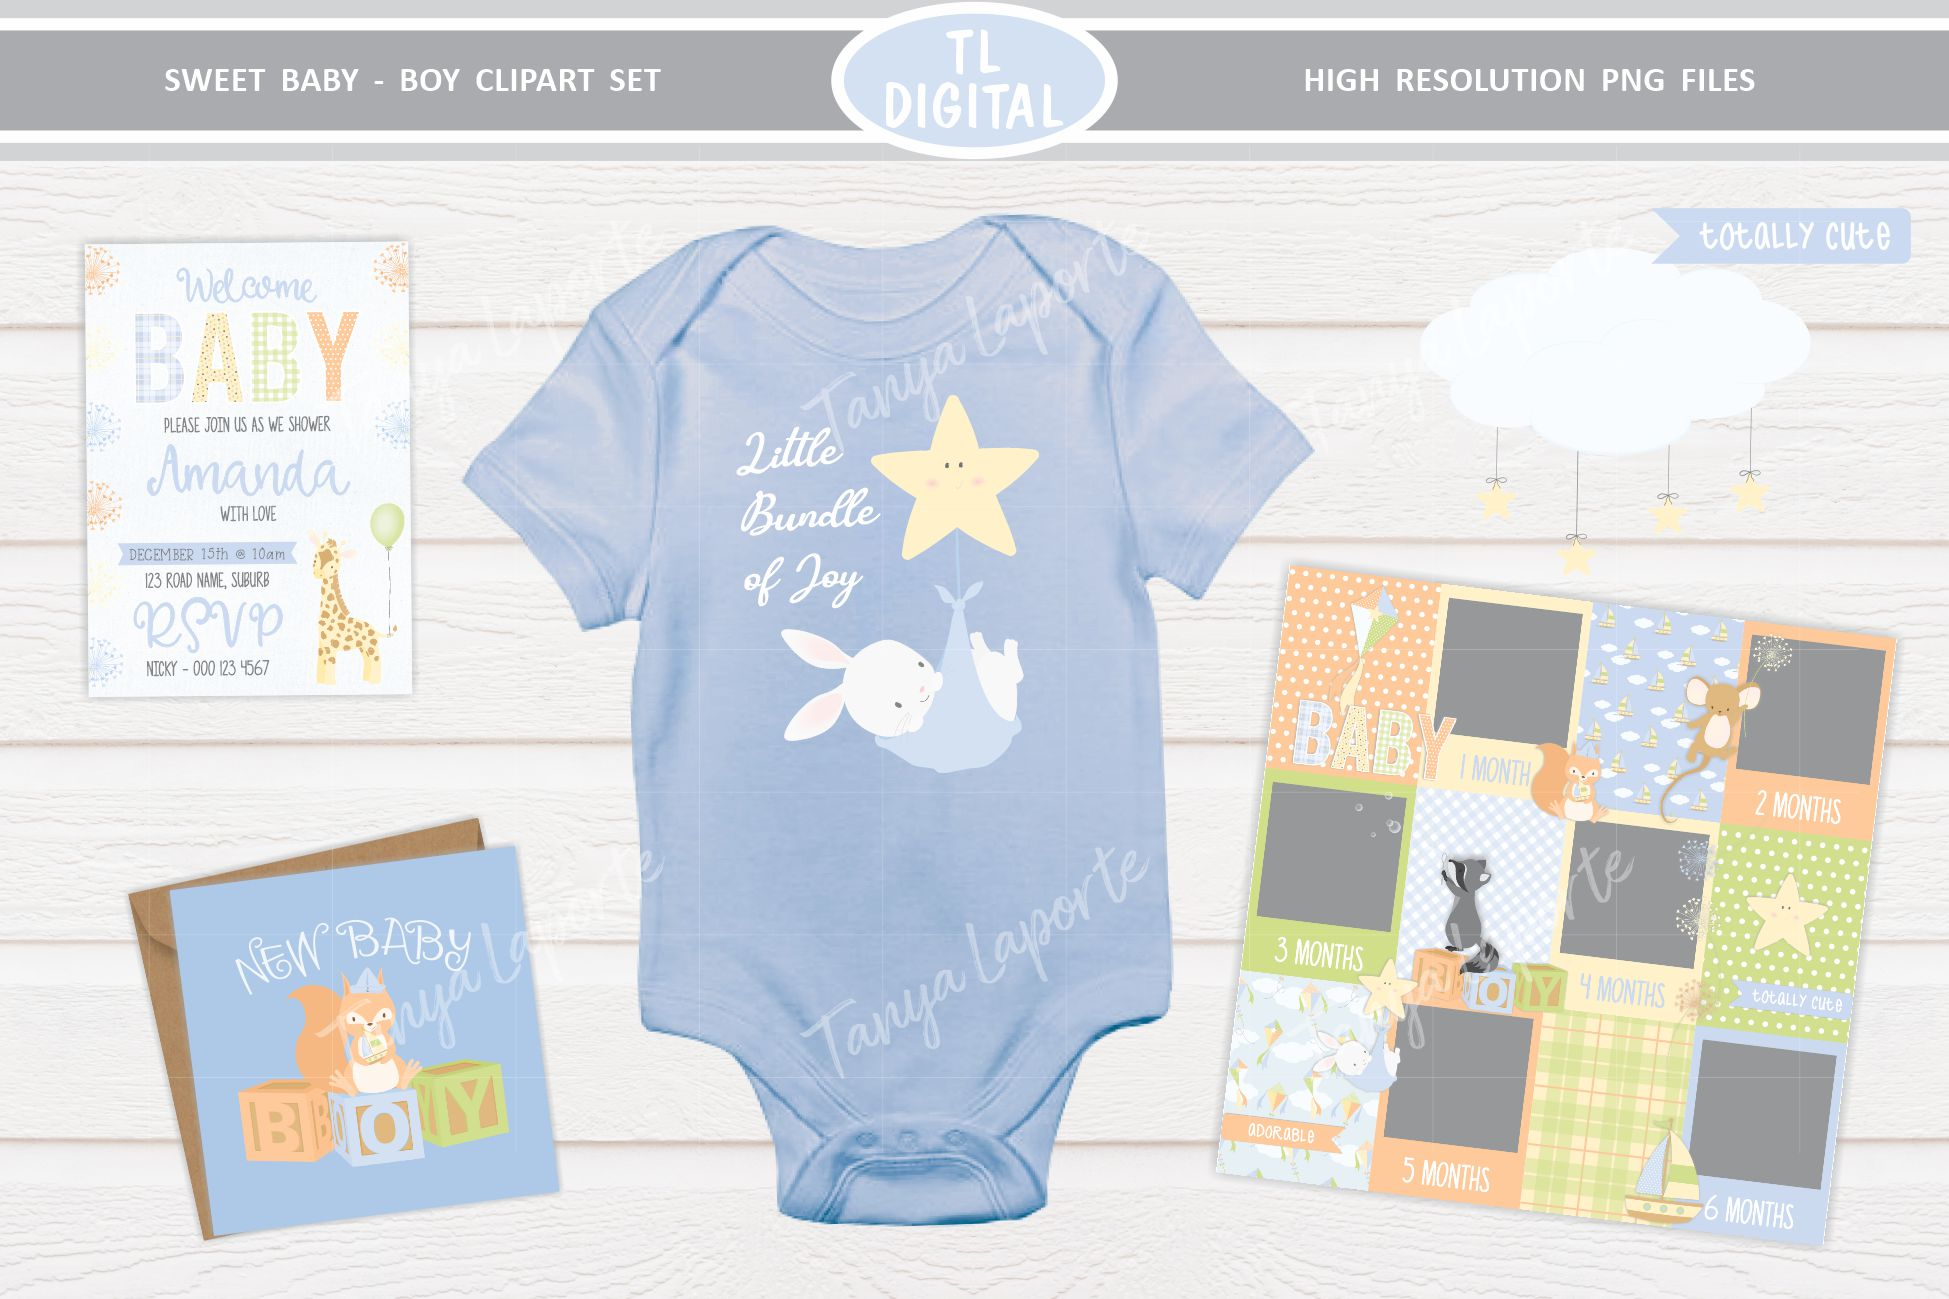 Sweet Baby Boy Clipart Set - 25 Baby themed Graphics example image 4